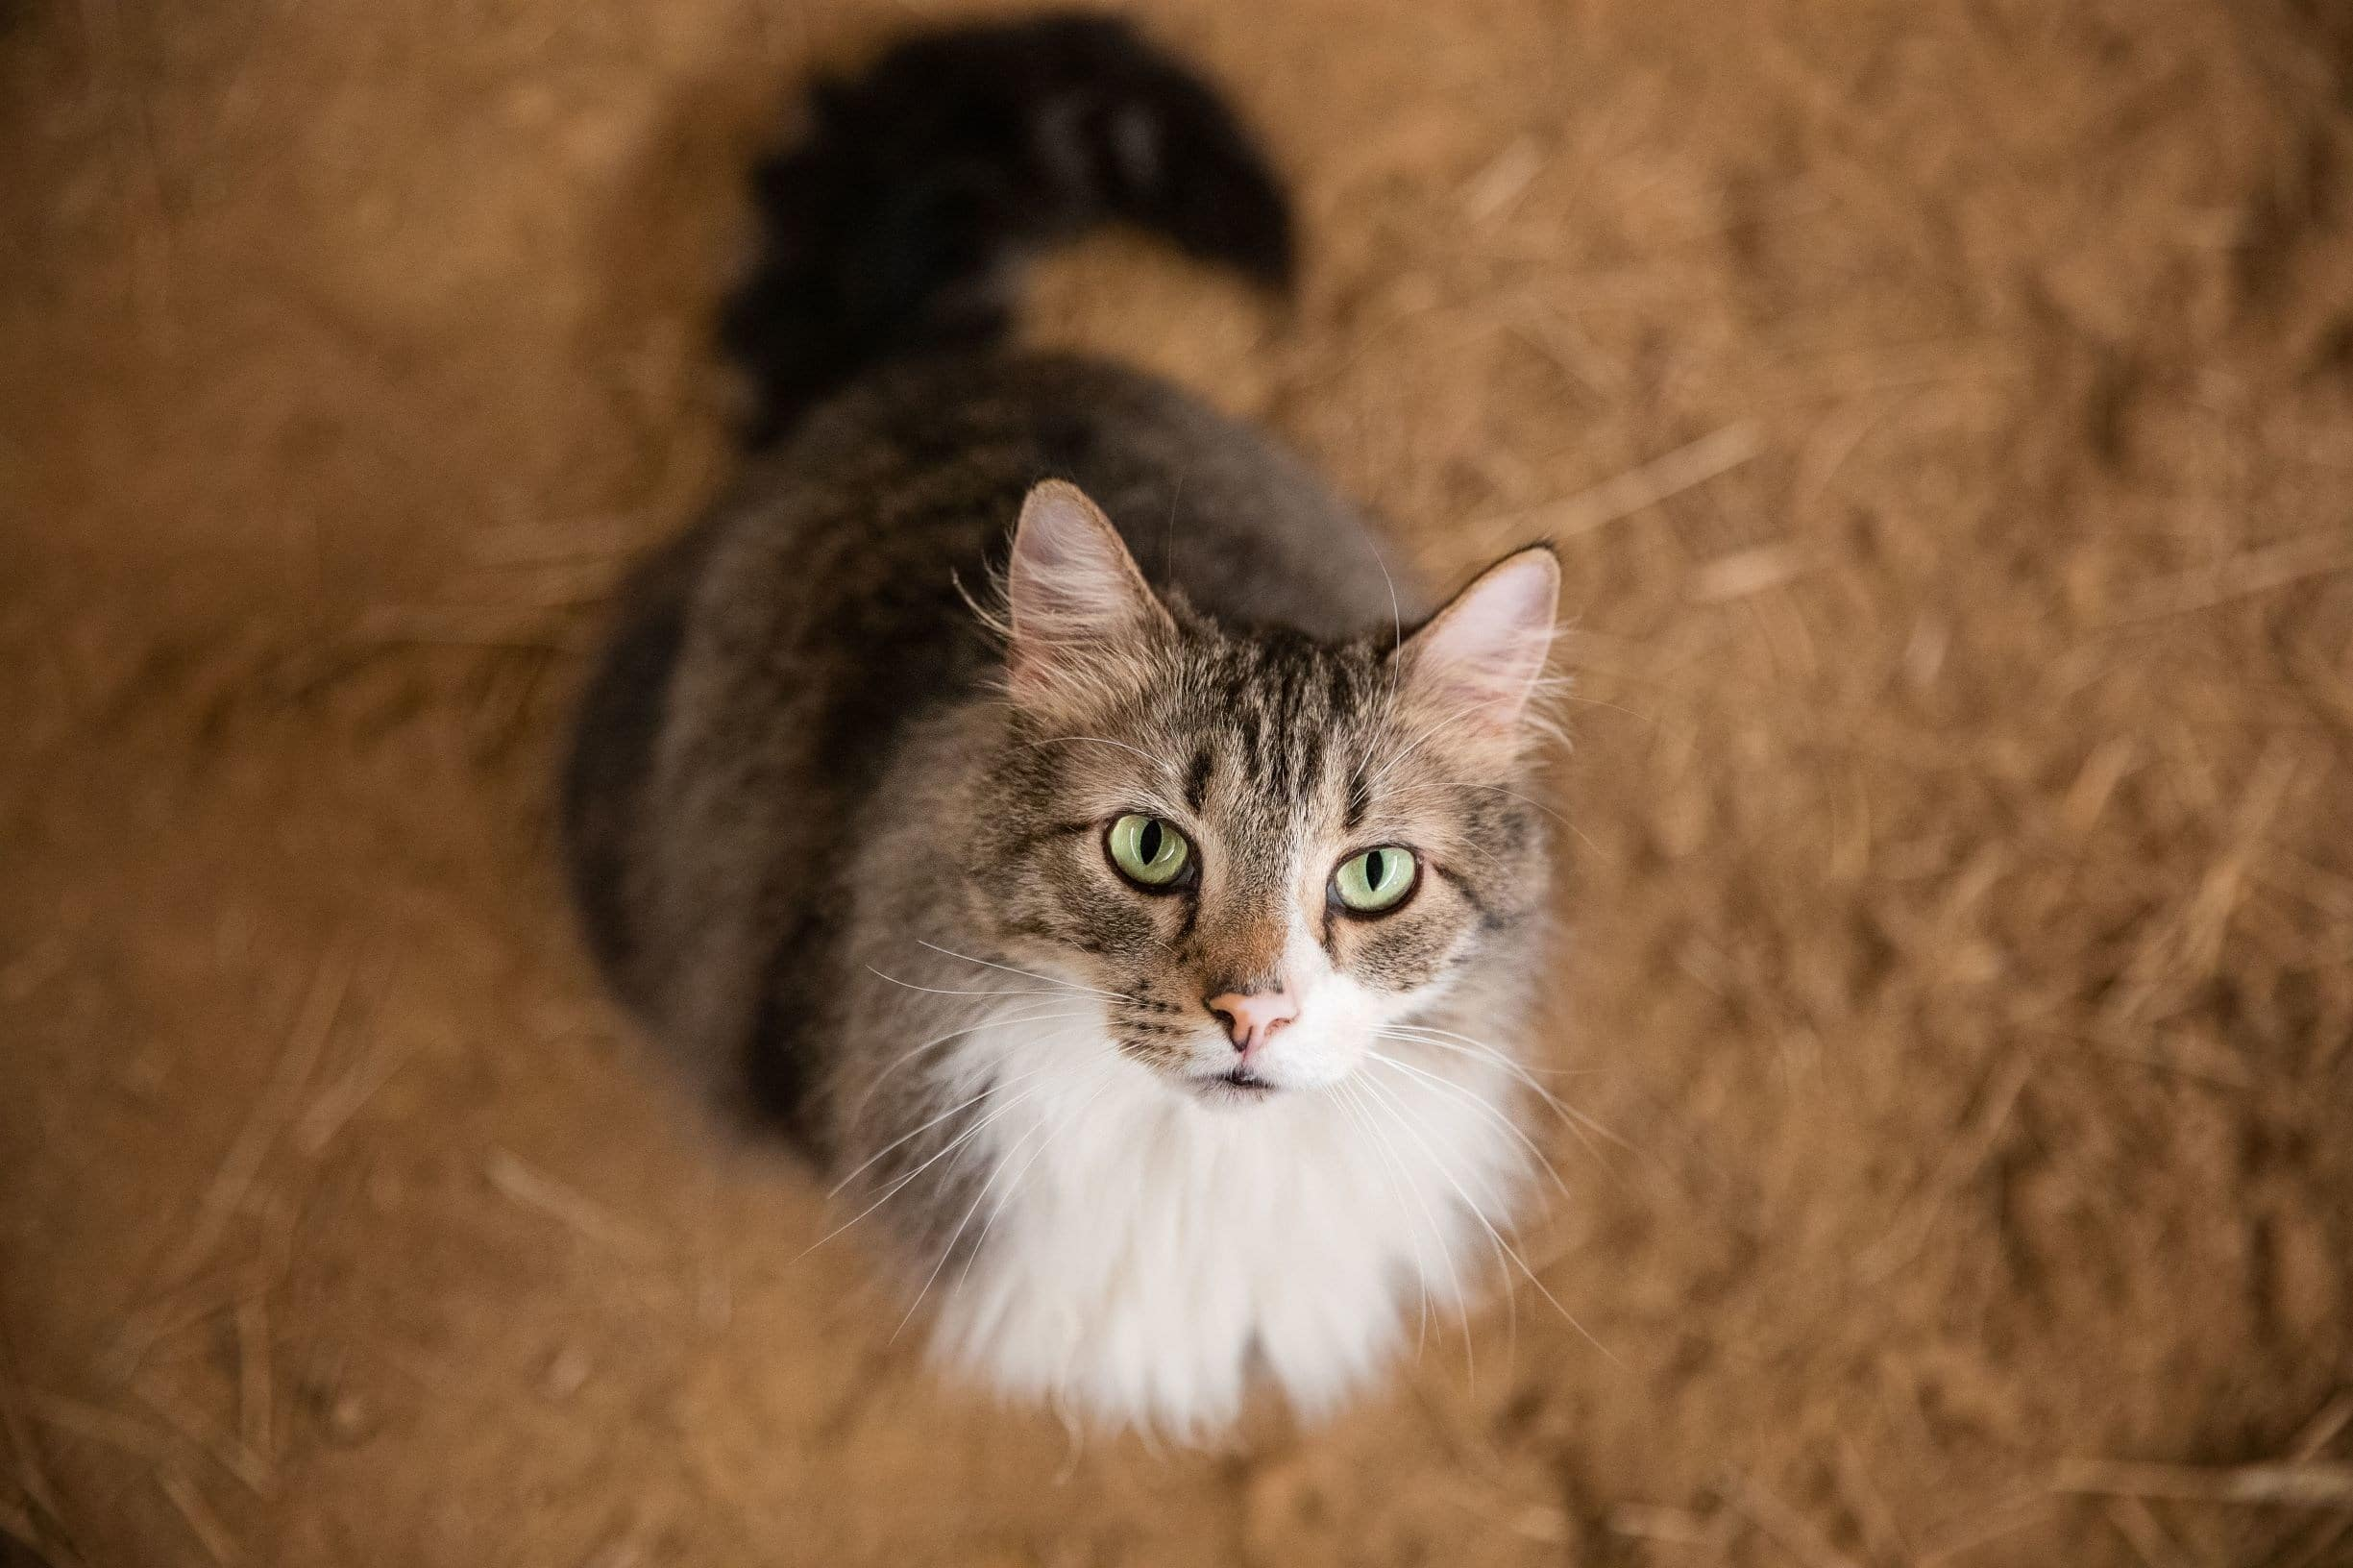 Adopt-a-Cat Month means a time to find shelter cats home and celebrate our furry feline friends